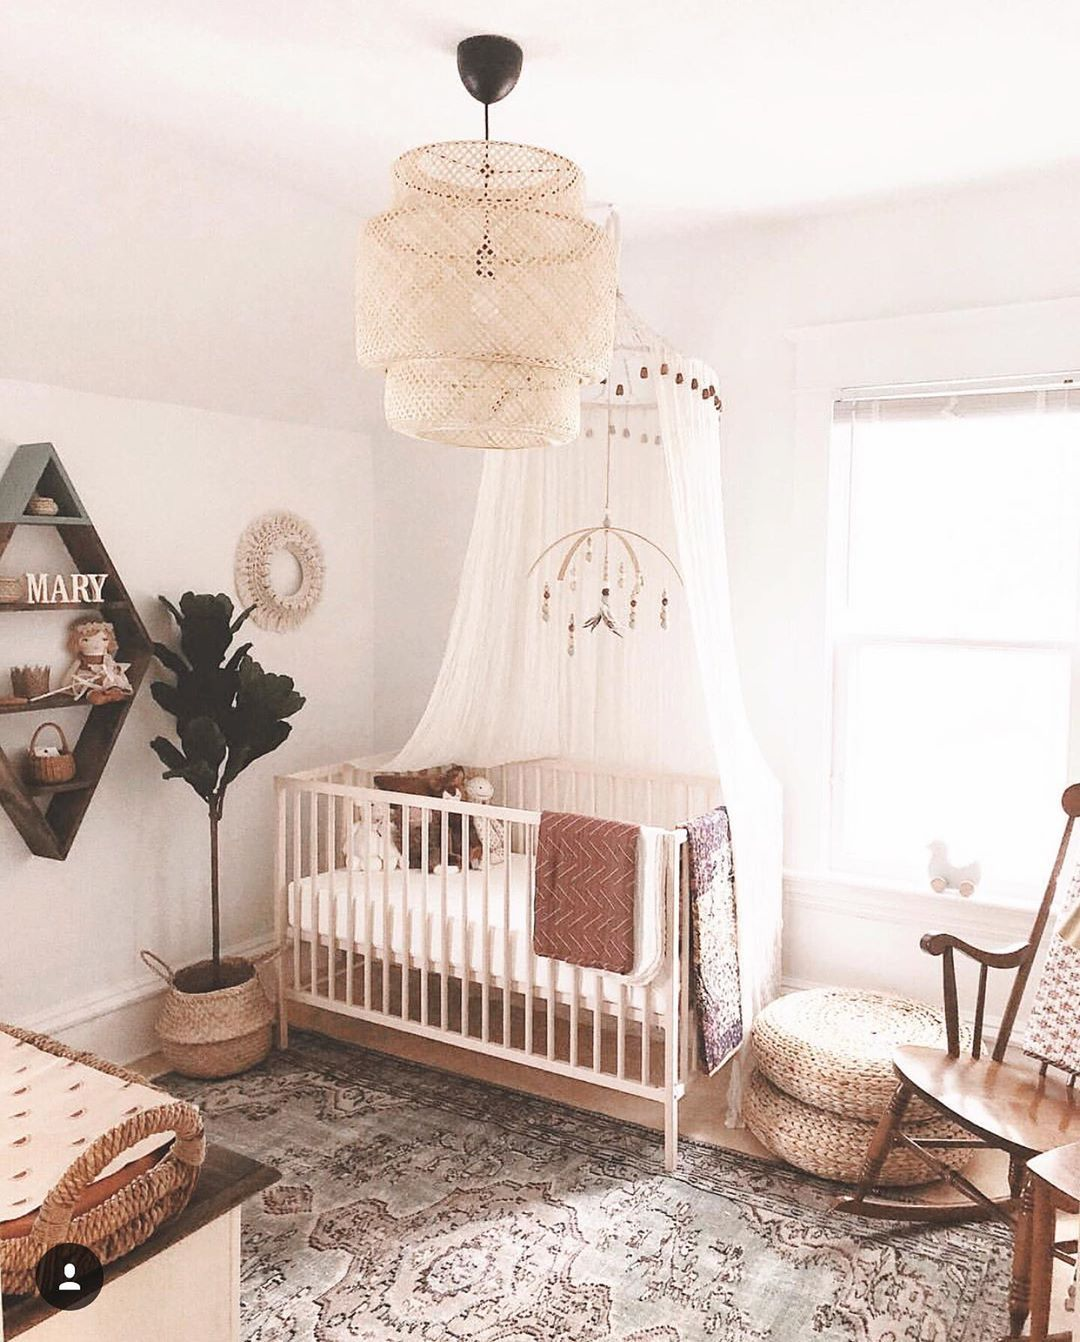 The Andersons On Instagram First Room We Decorated In House Was Nursery For Our Little Baby Girl